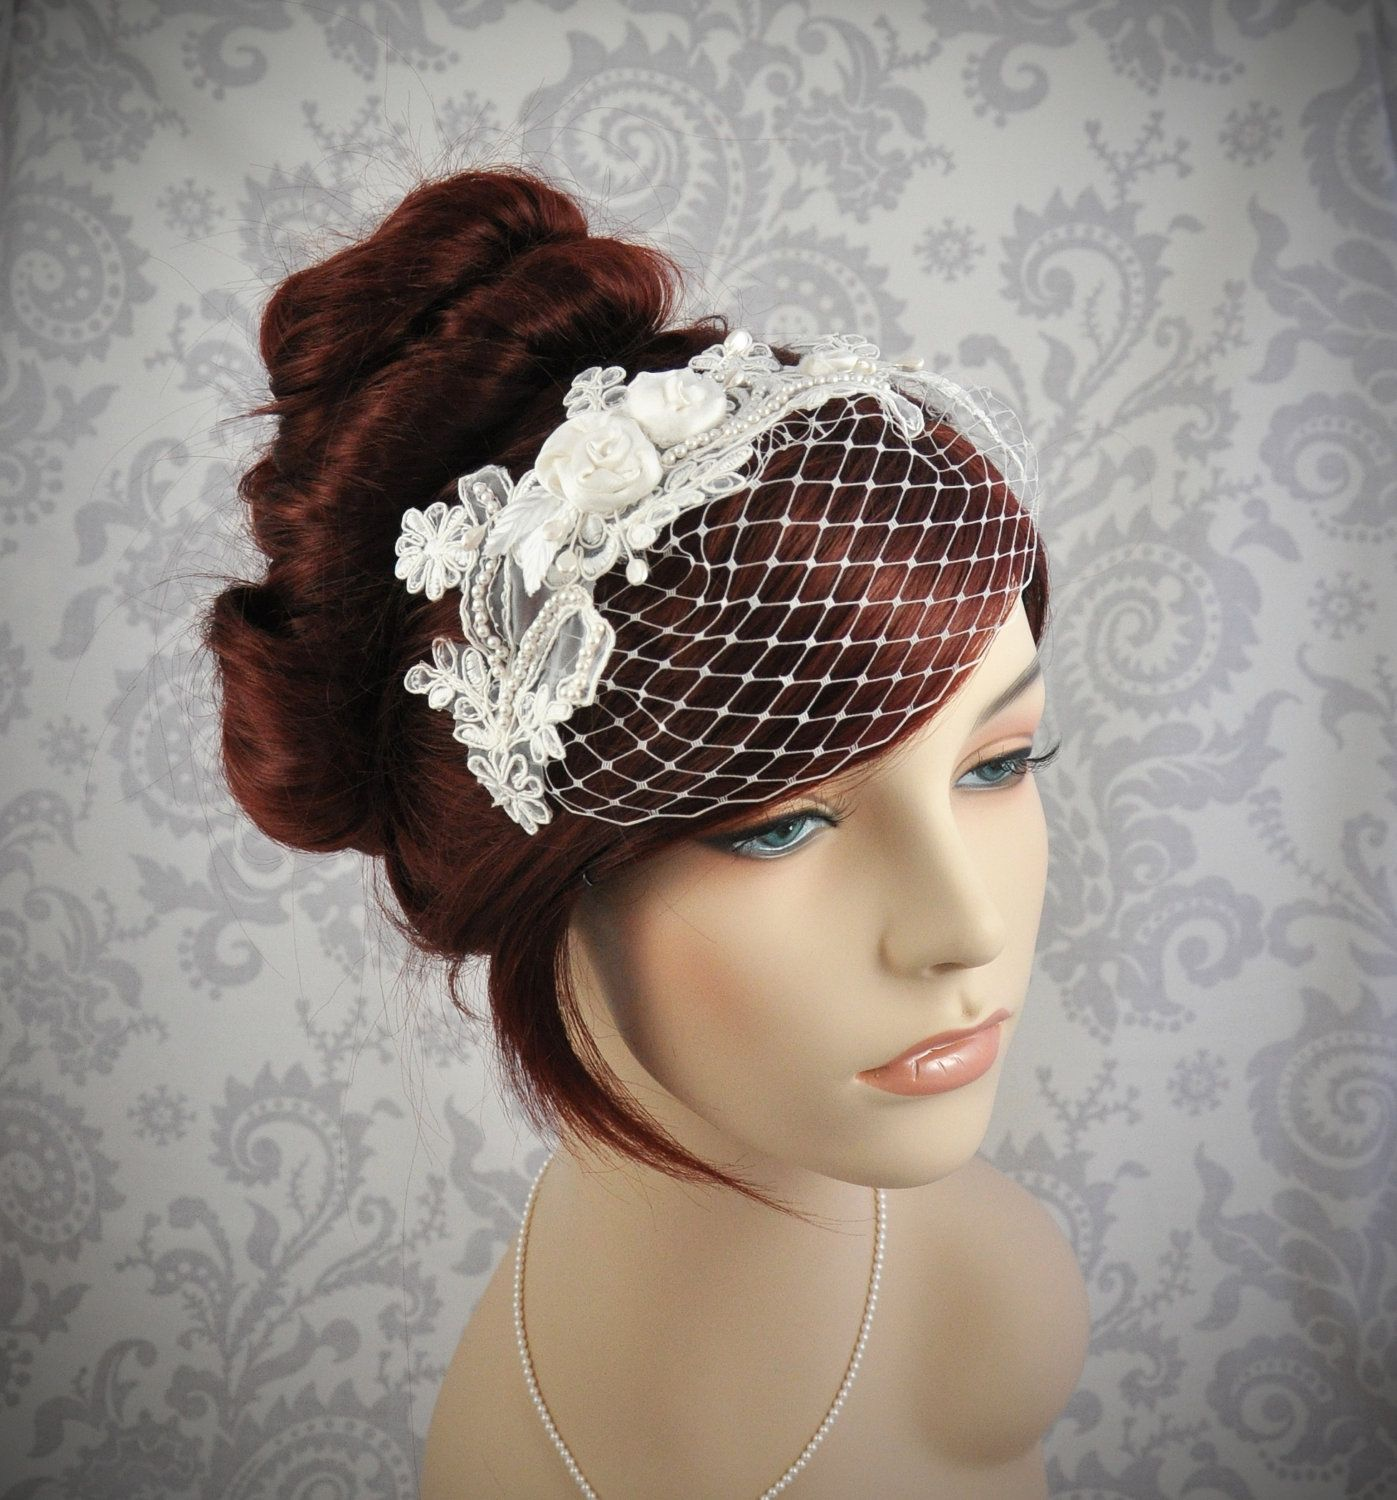 Wedding Hairstyles With Headband And Veil: Detachable, Headband Veil With French